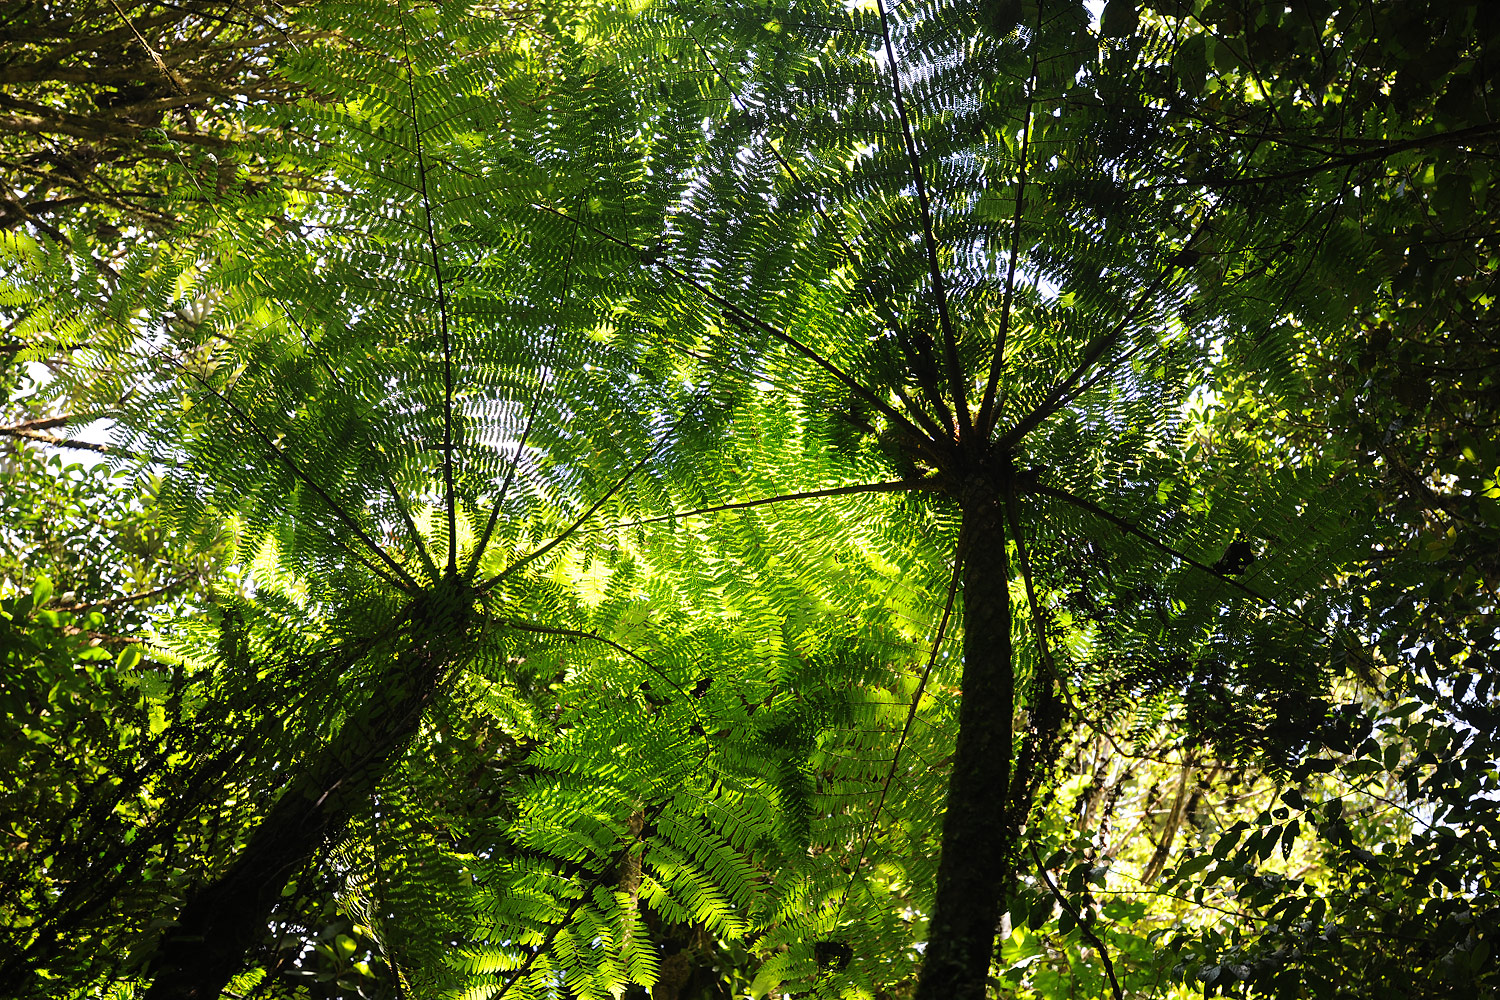 Giant Ferns, Monteverde Cloud Forest, Costa Rica